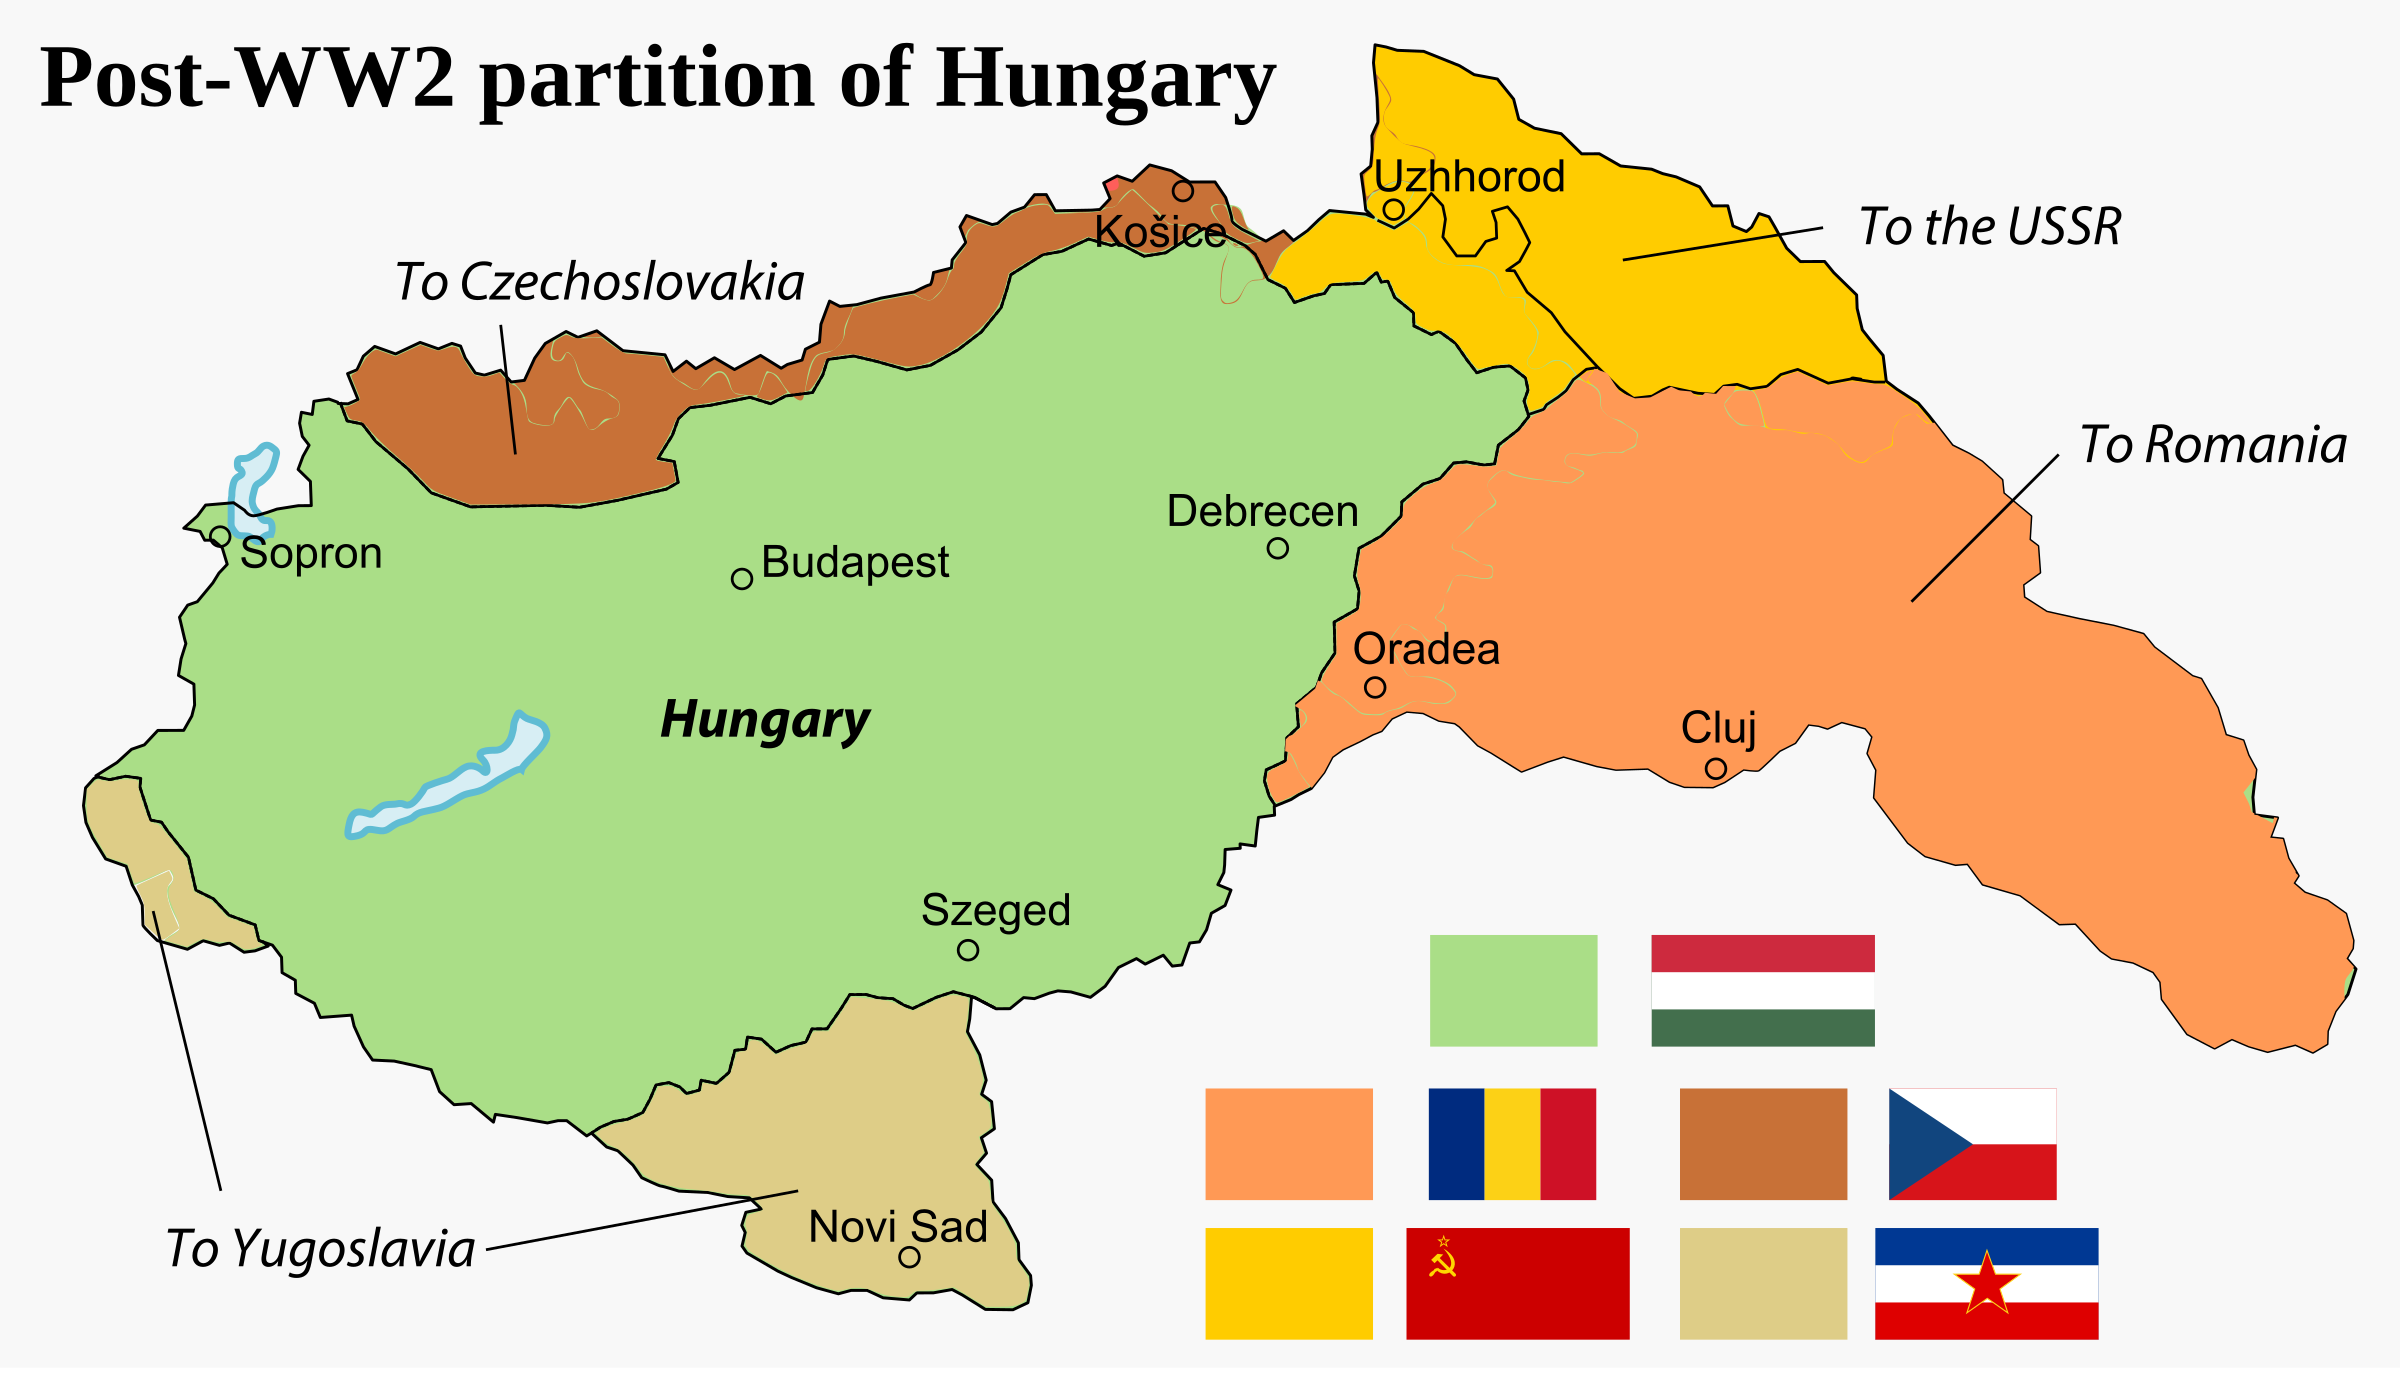 Partition of the Kingdom of Hungary after WW2, 1945. by derkommander0916